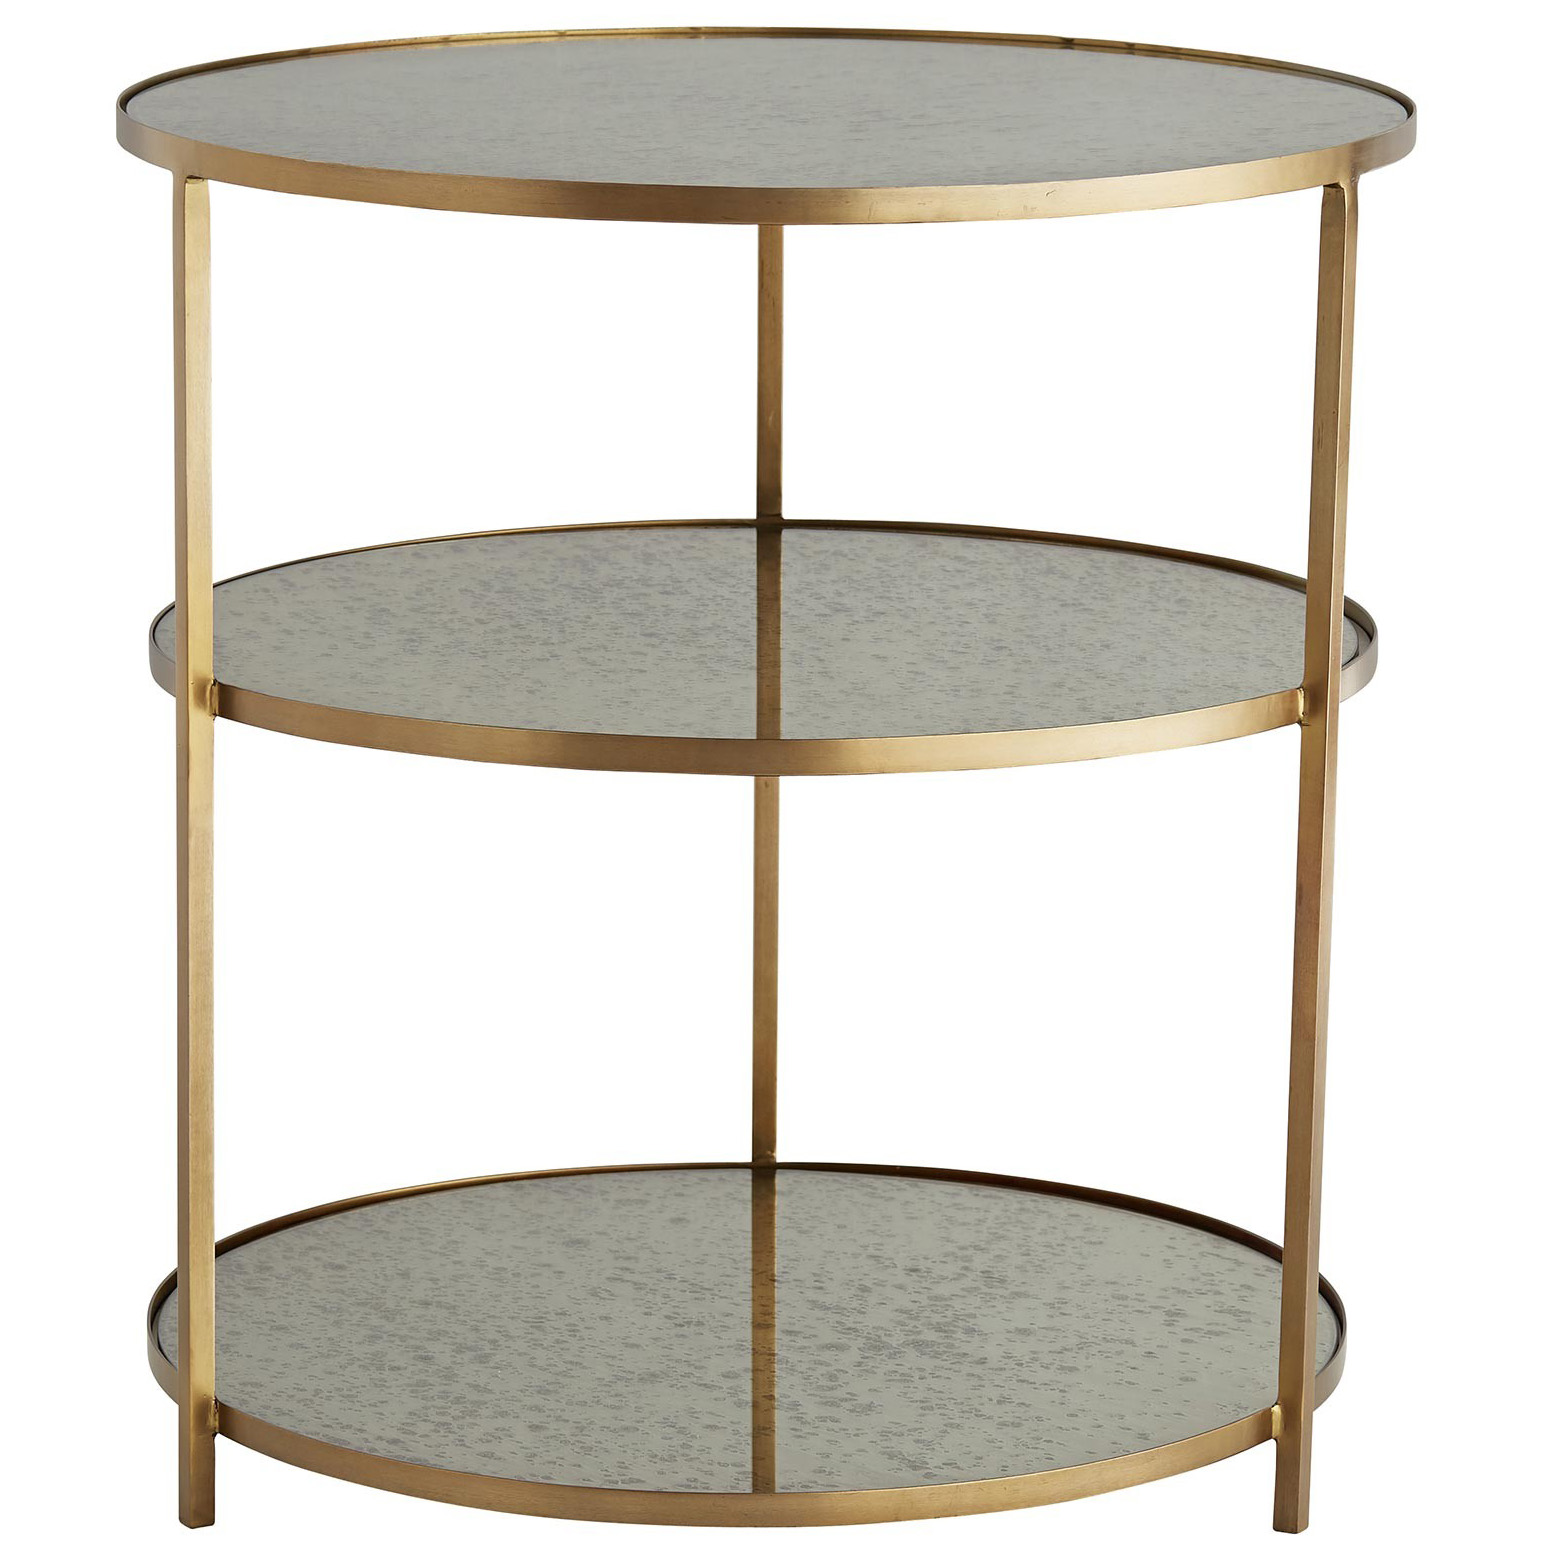 antiqued mirror side tables dandelion spell accent table and round tier iron with antique brass finished frame laminate floor trim target chalk paint hobby lobby coffee pier one